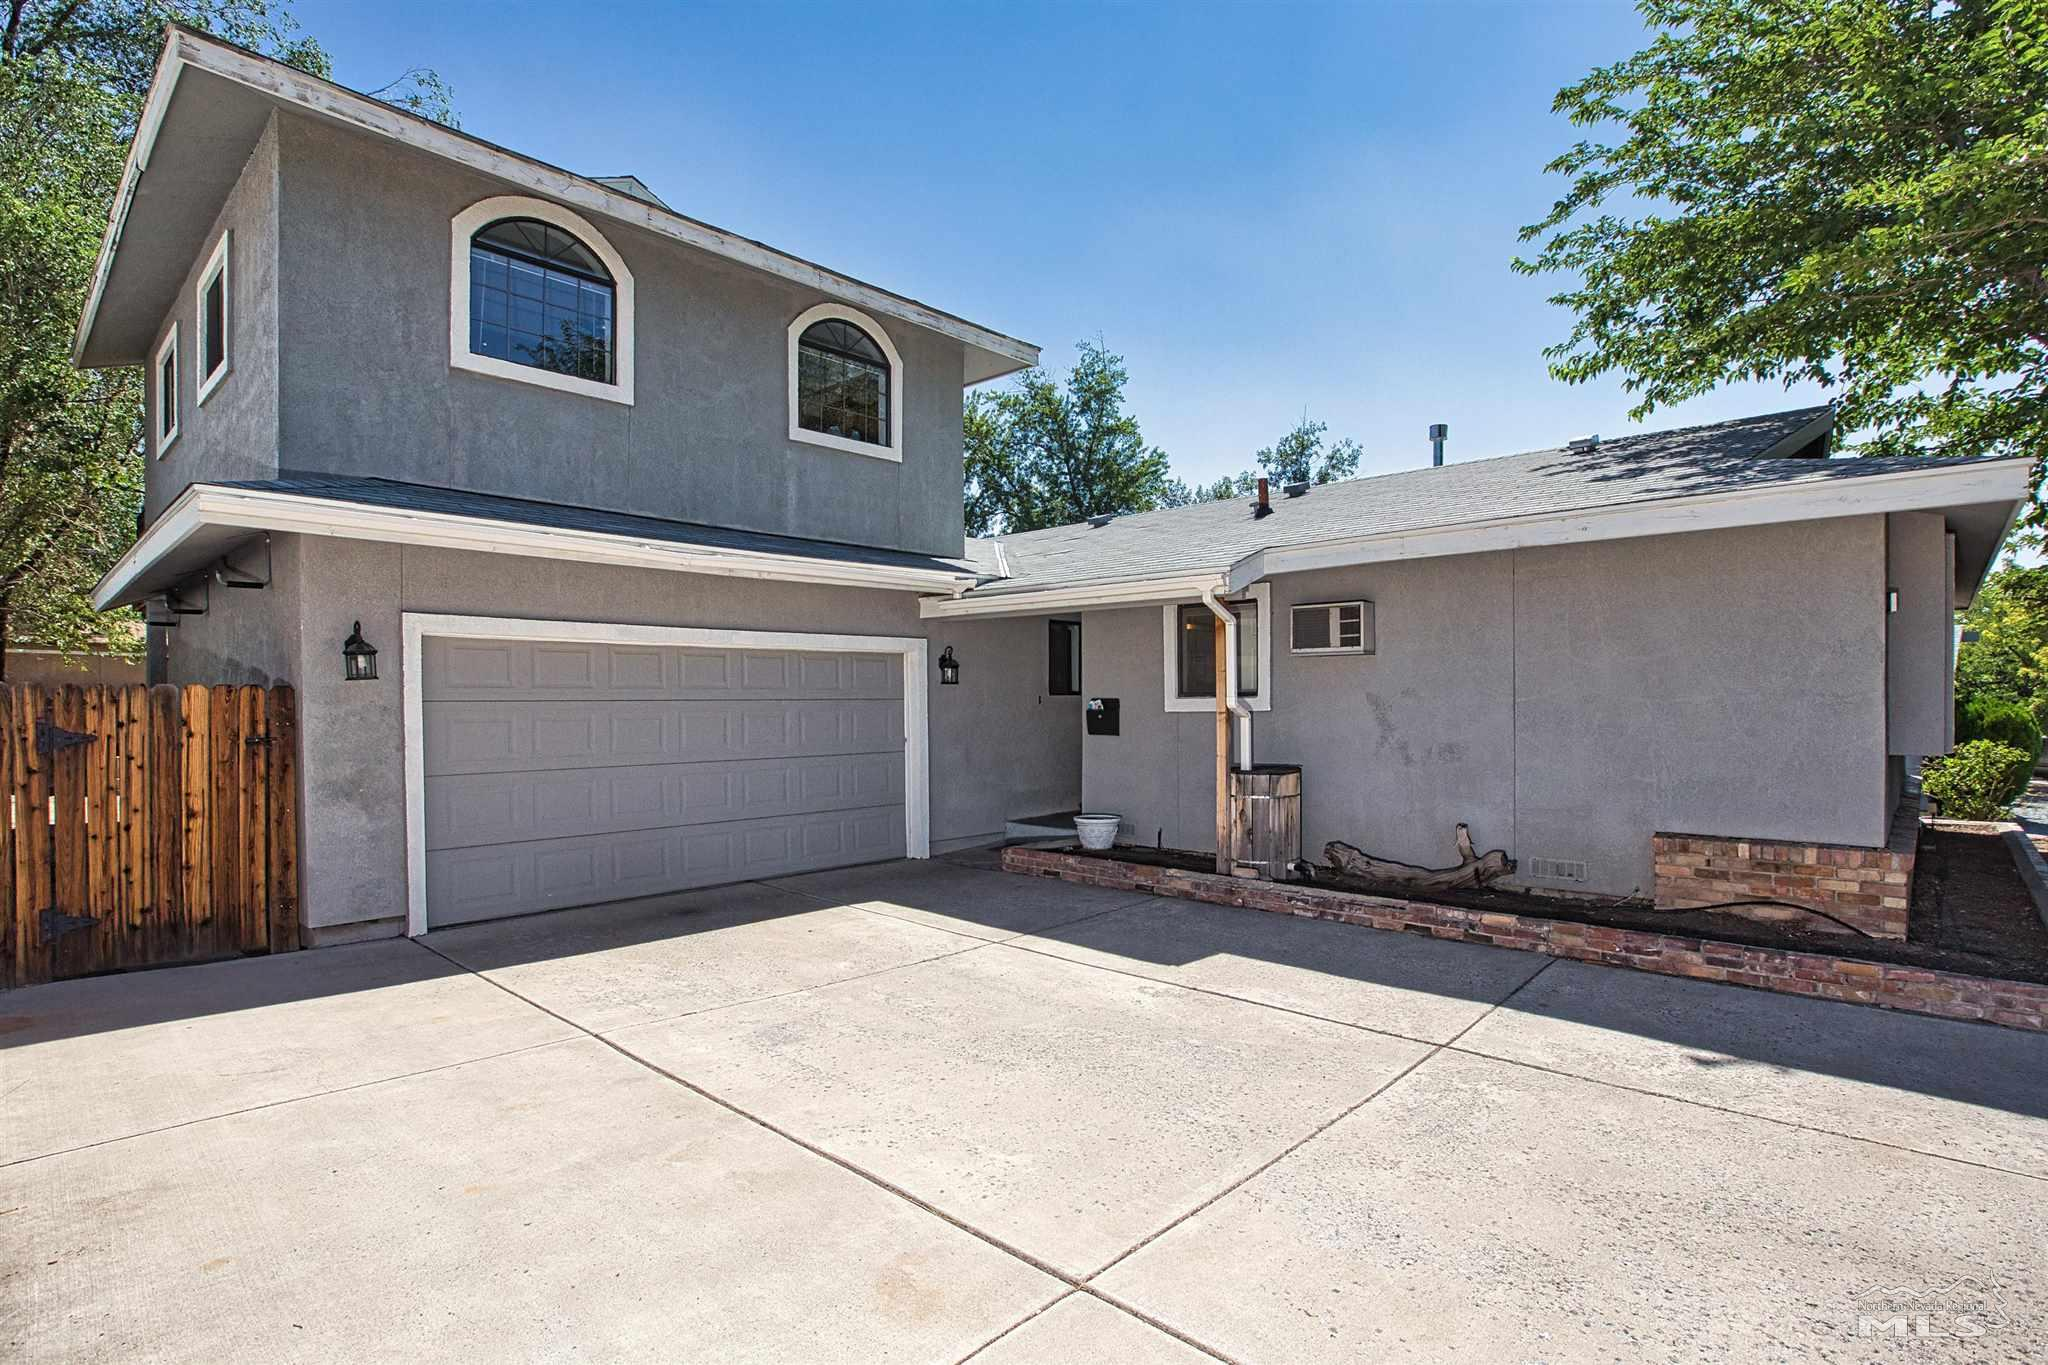 Image for 3240 Heights, Reno, NV 89503-3823